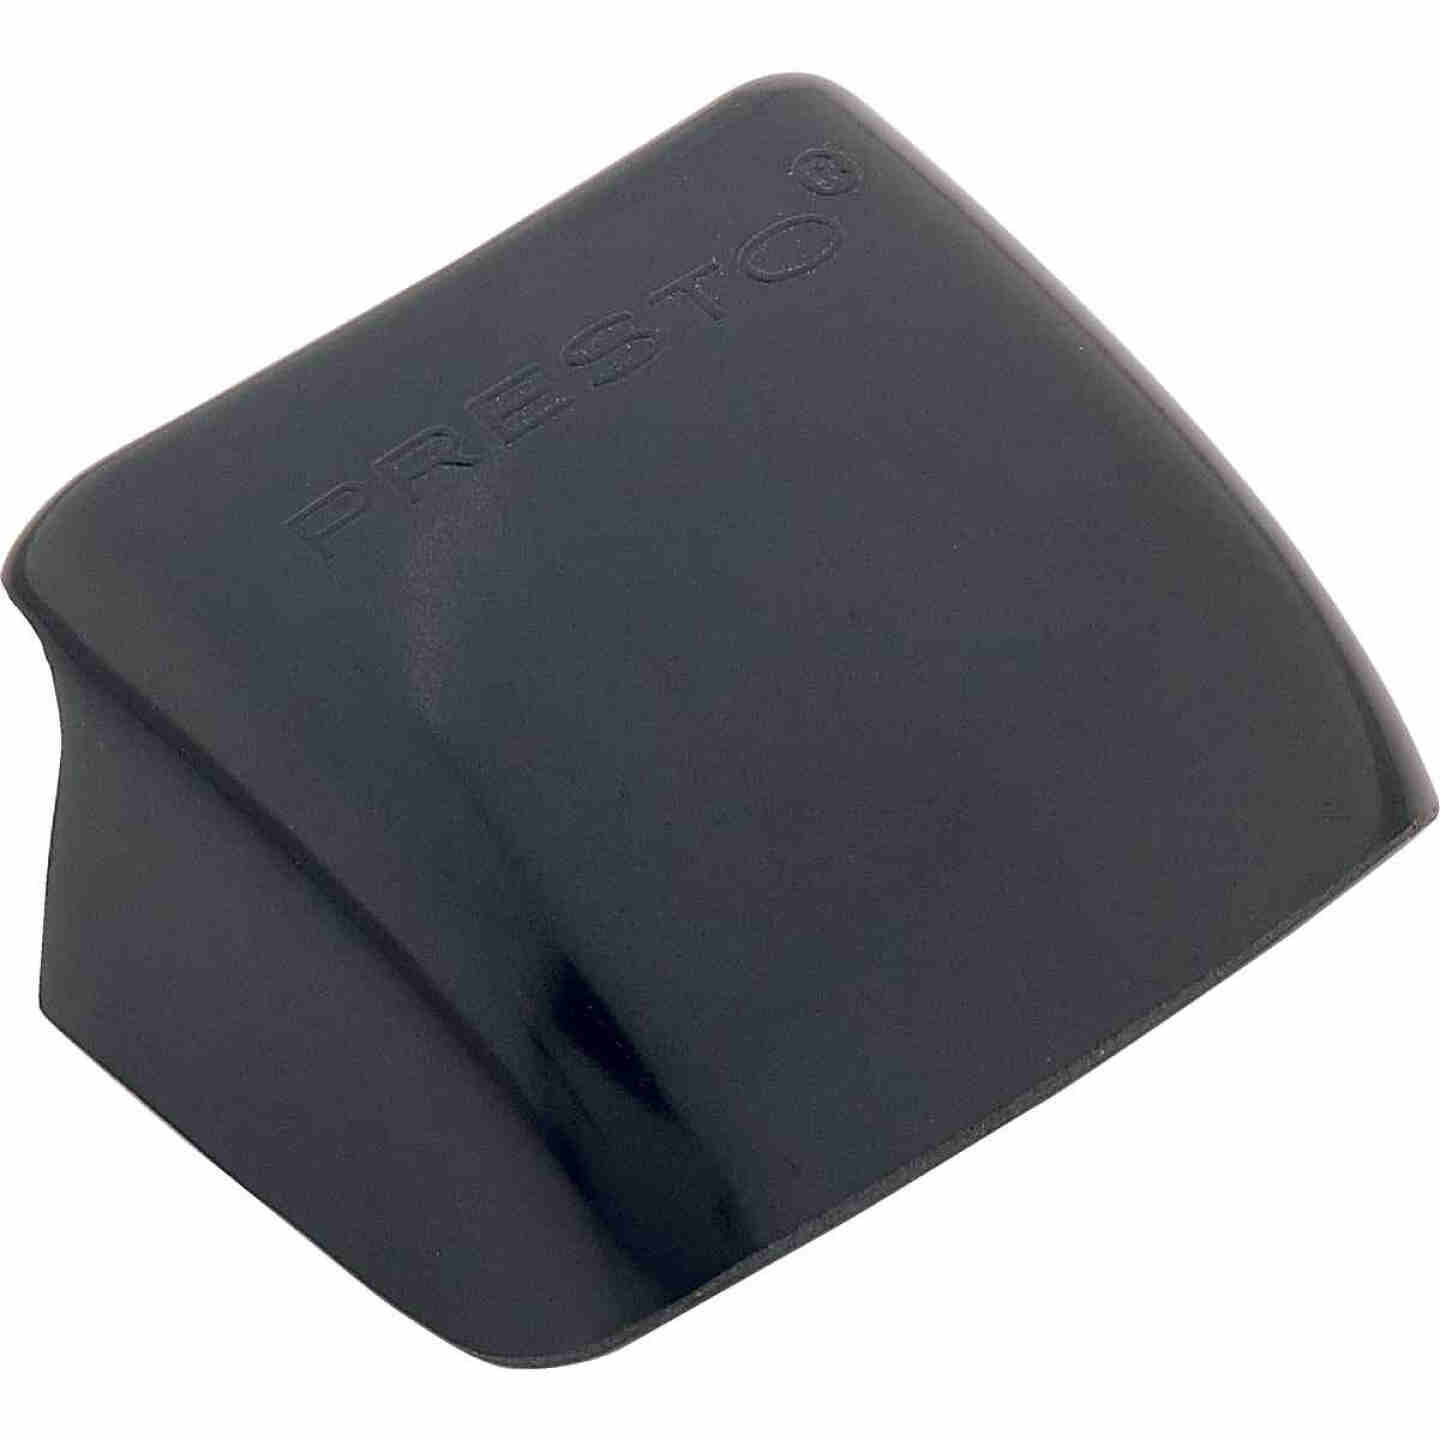 Presto 12 to 22 Qt. Canner Pressure Cooker Cover Handle Image 1